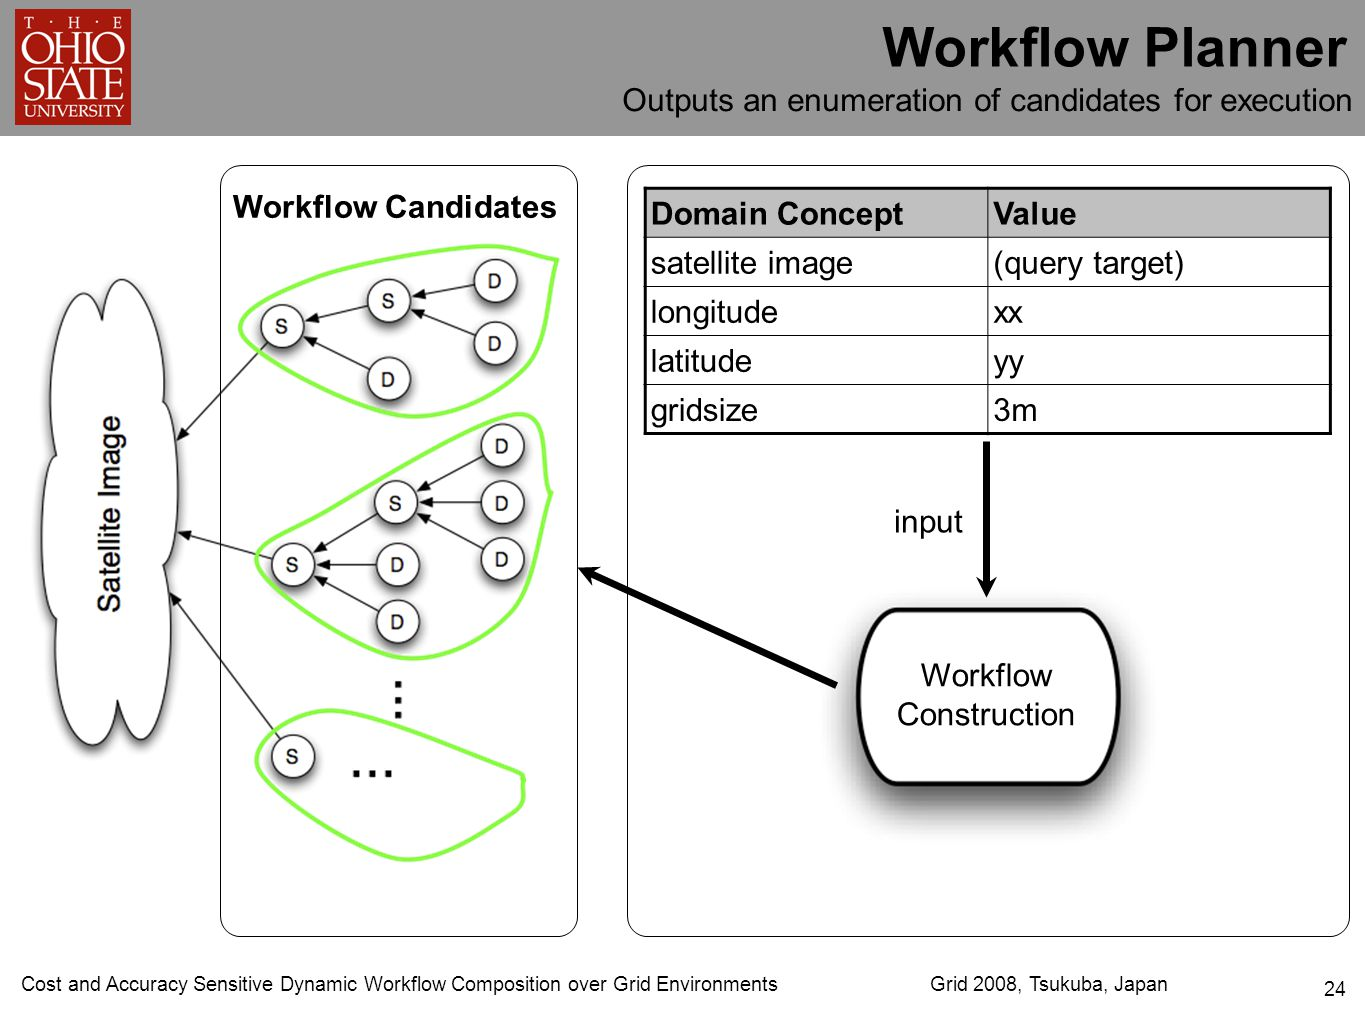 Cost and Accuracy Sensitive Dynamic Workflow Composition over Grid EnvironmentsGrid 2008, Tsukuba, Japan 24 Workflow Planner Domain ConceptValue satel